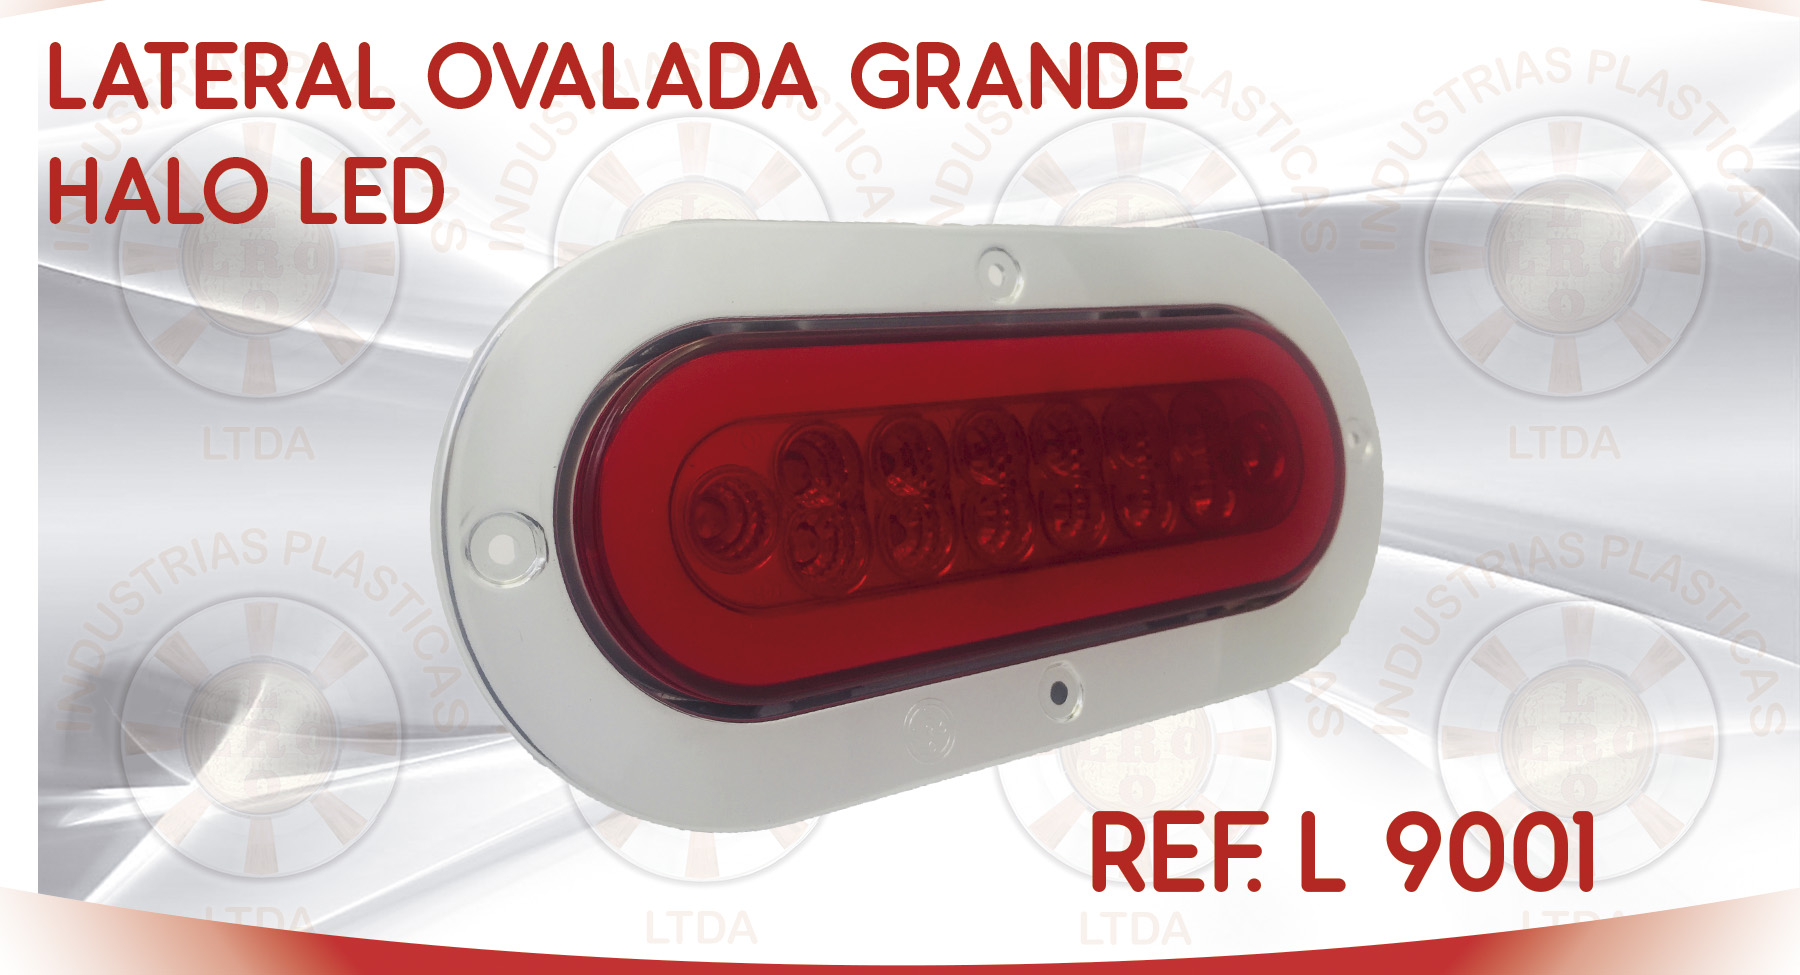 L 9001 LATERAL OVALADA GRANDE HALO LED